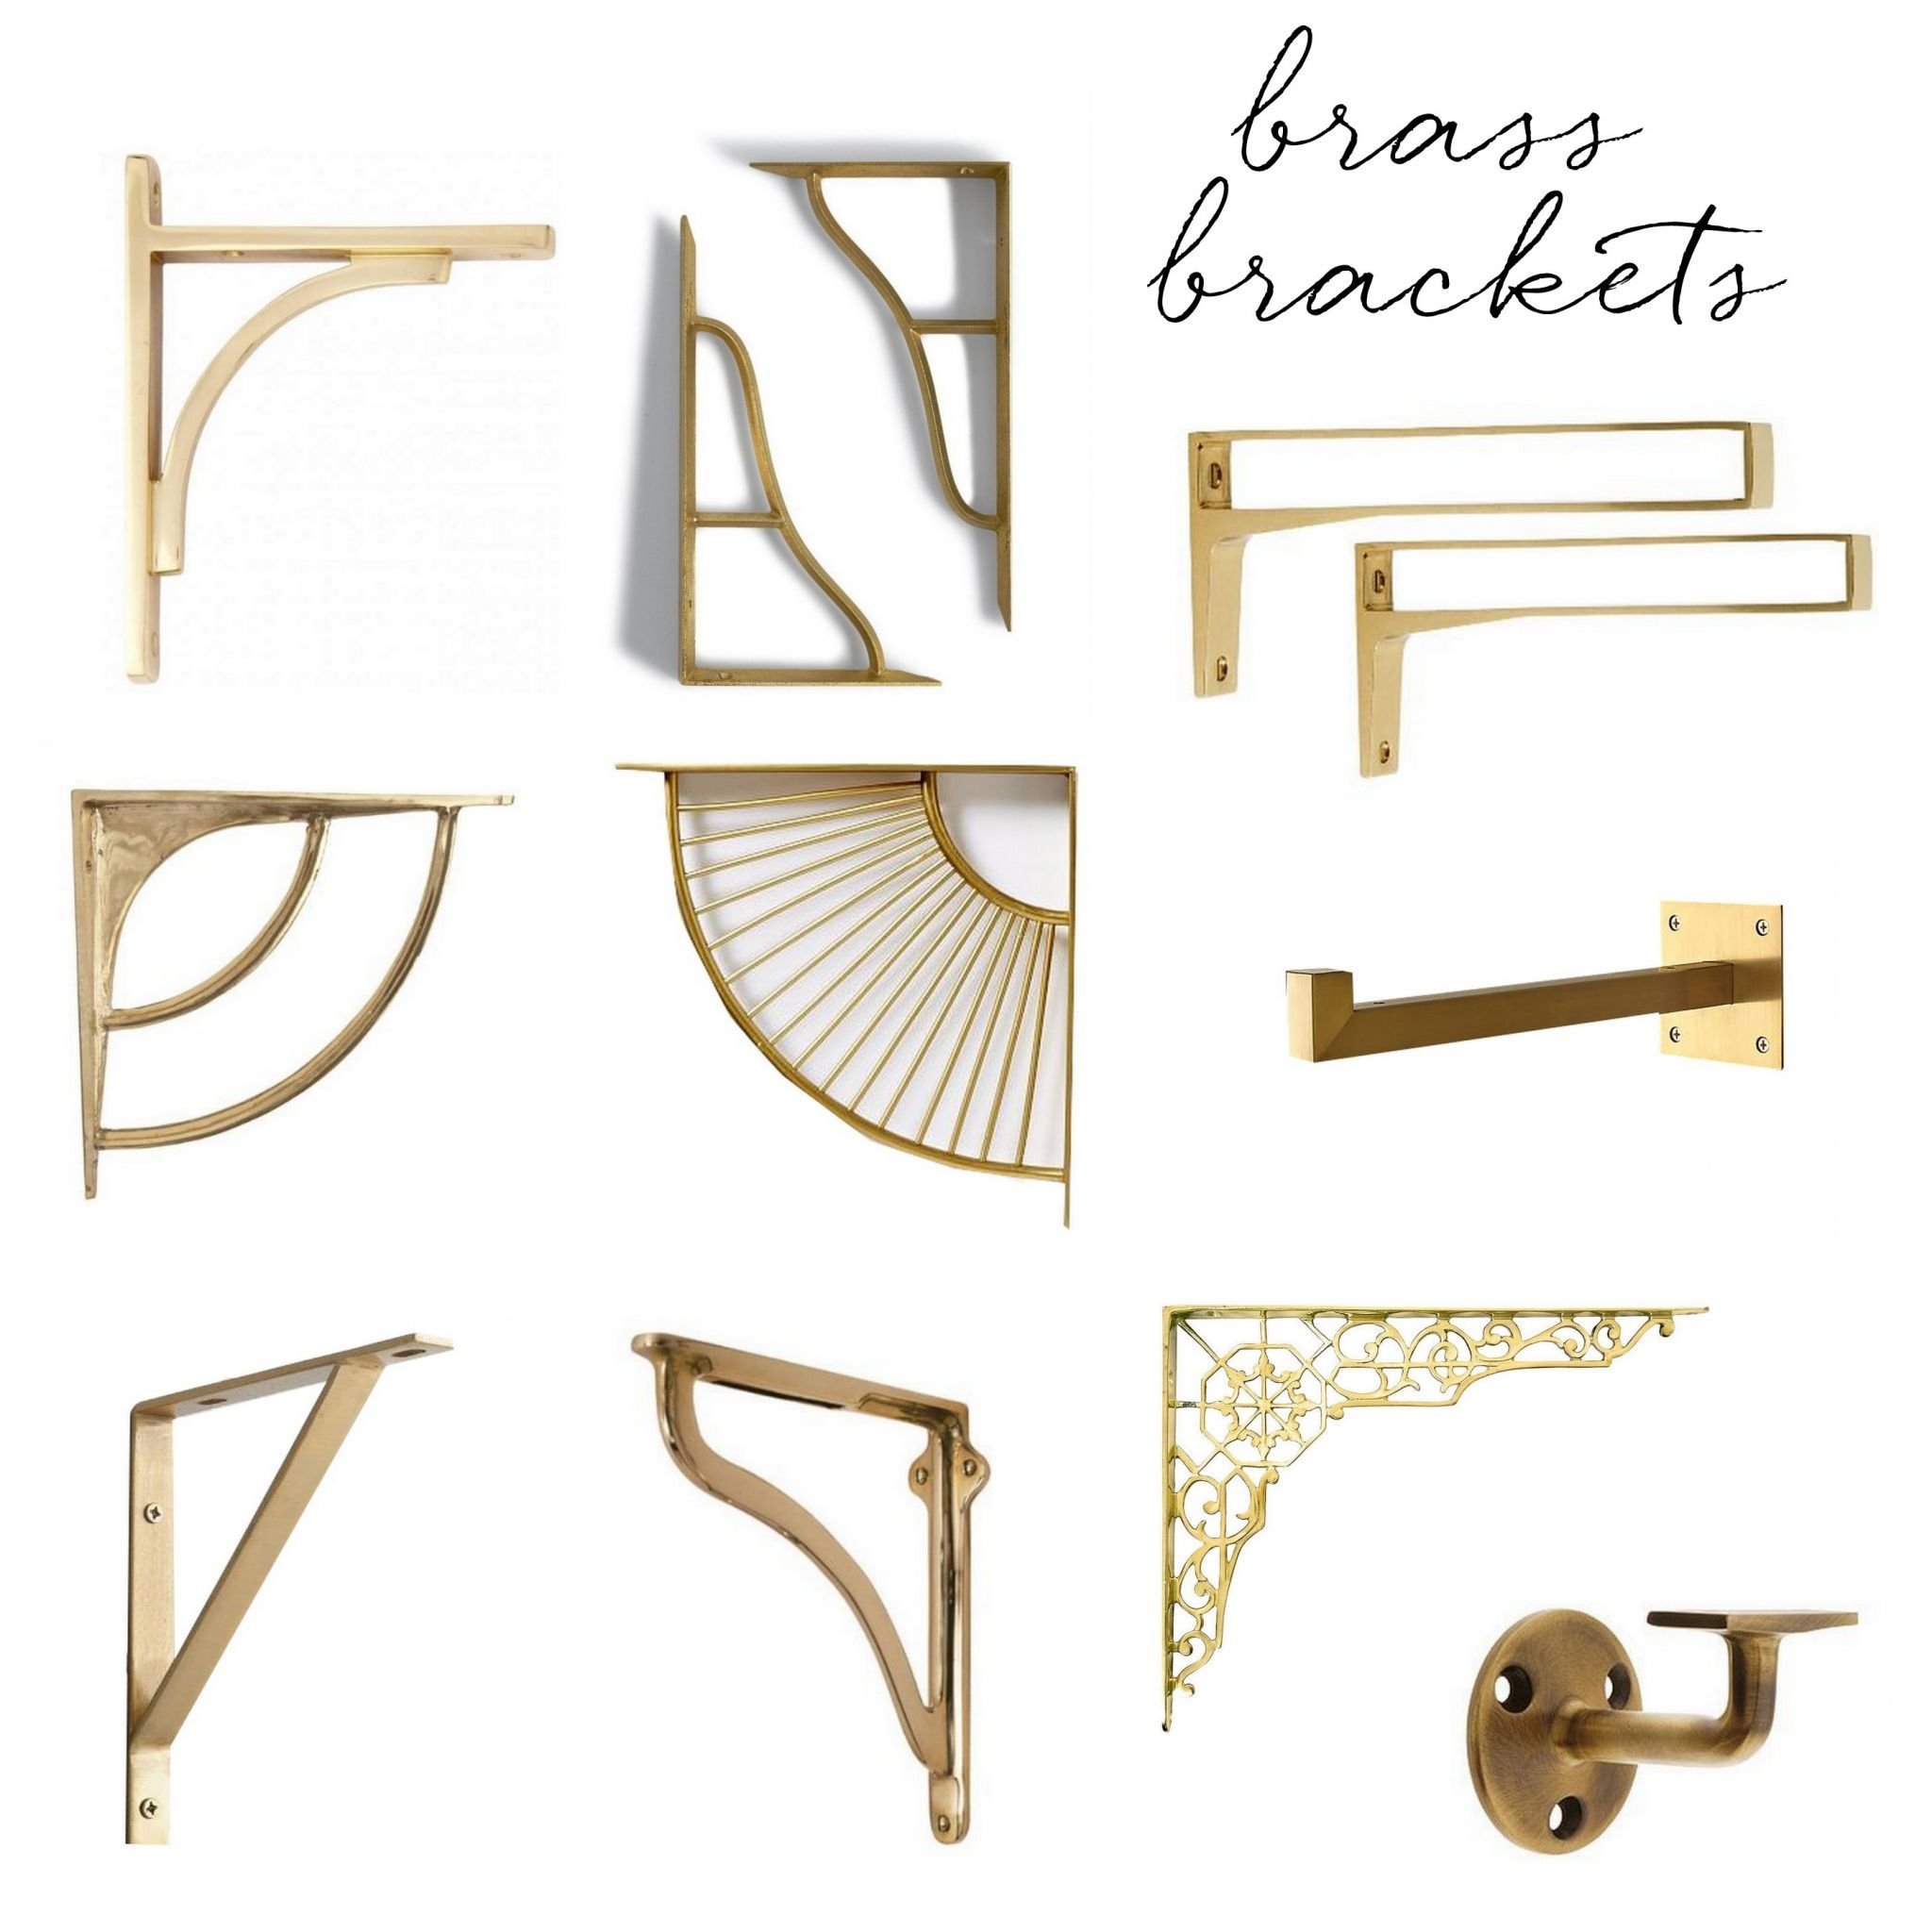 brass shelf brackets future home floating study shelves standing bookshelf wall mounted desk with drawers corner cabinet glass open simple shoe bunnings bar stools fan canadian